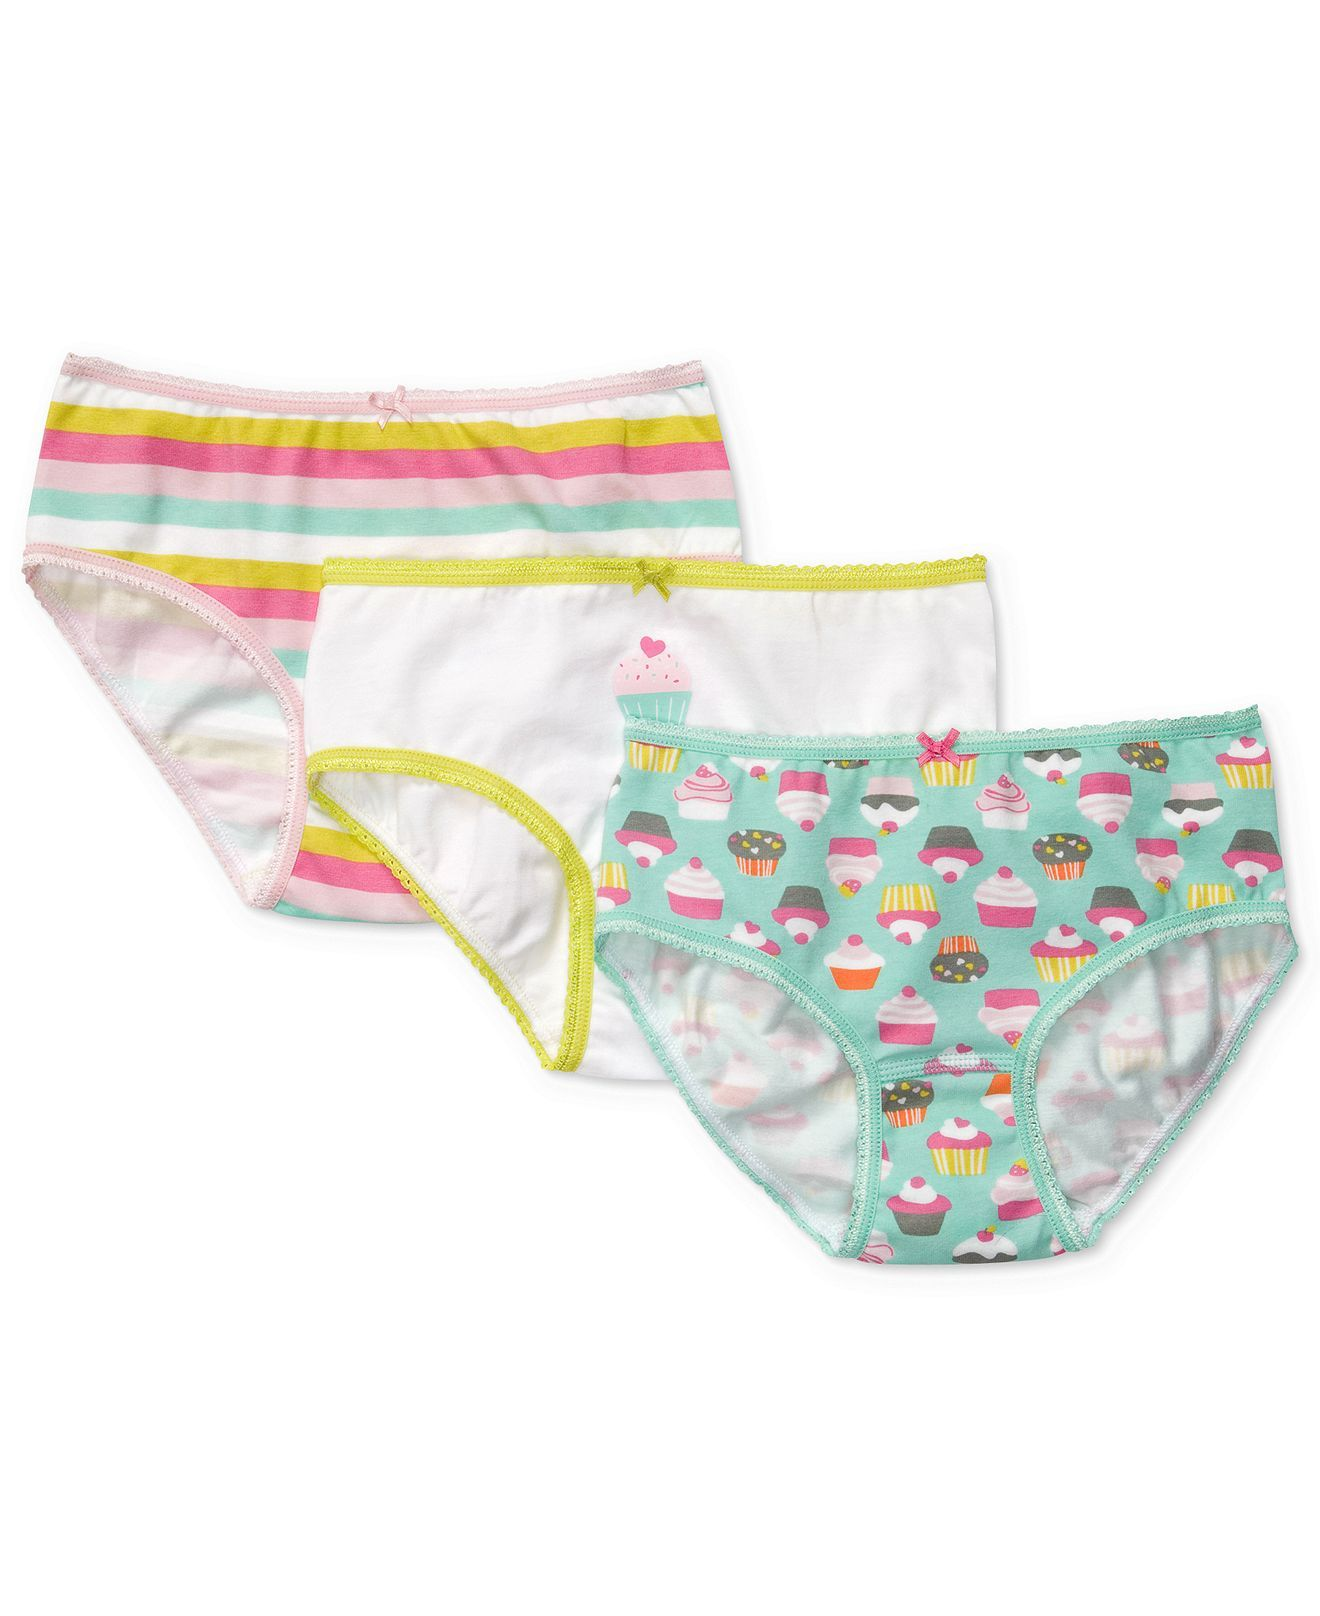 NWT GYMBOREE Girls Cotton White Panties Panty Pk Choice Pack Set NEW 3 Pk